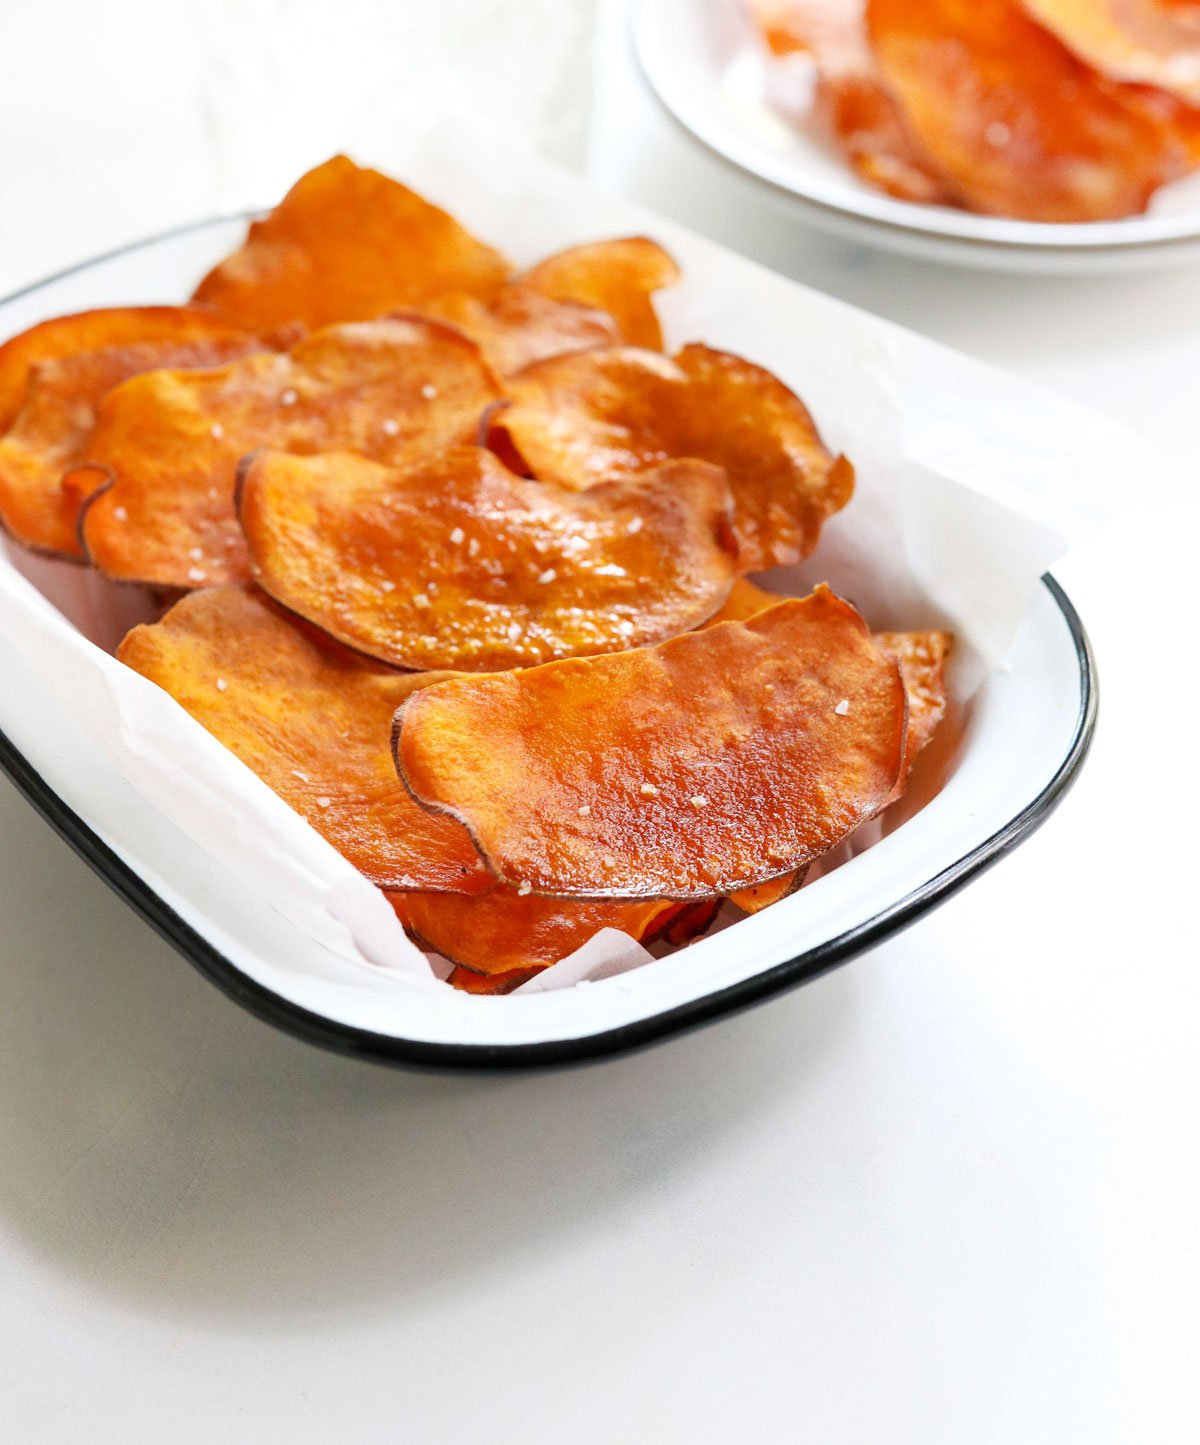 sweet potato chips from the side in a white bowl